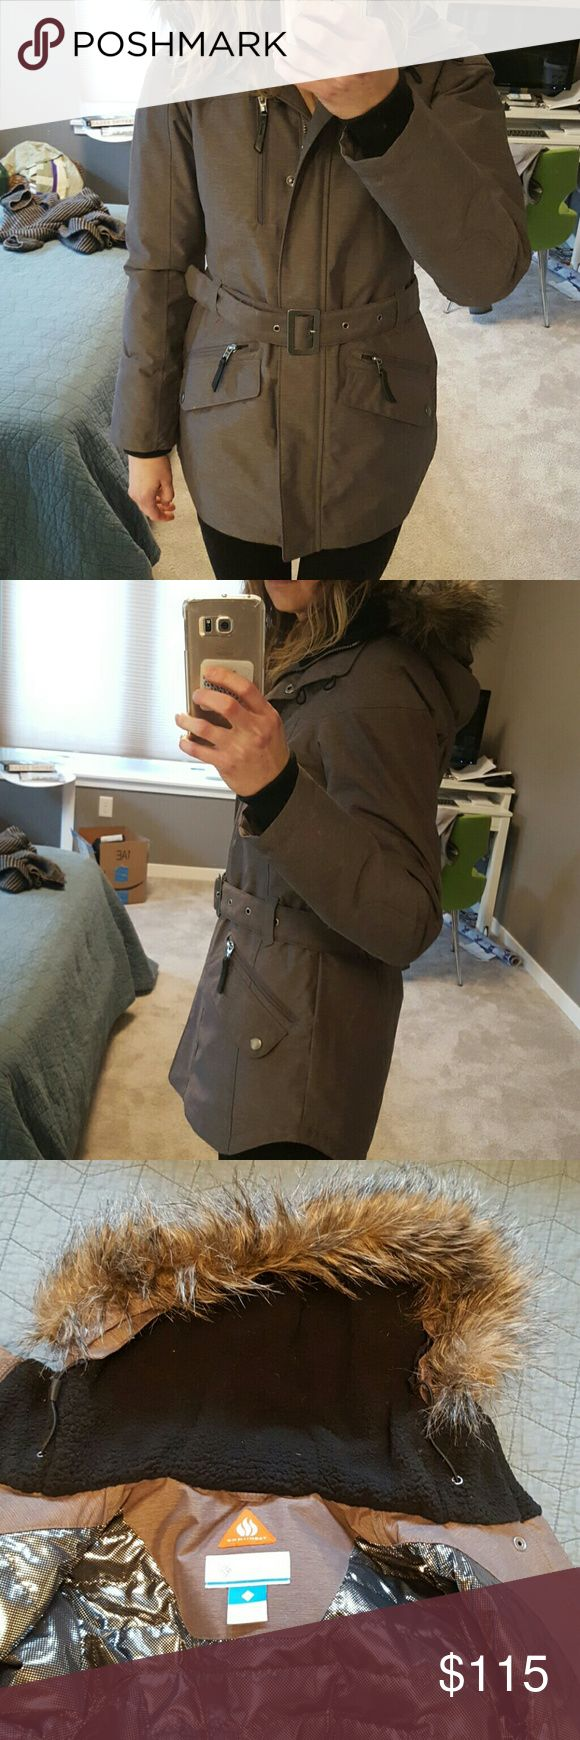 Columbia coat Brown Columbia coat with fur lined hood, cute belt, very warm, worn 2-3 times. Columbia Jackets & Coats Puffers